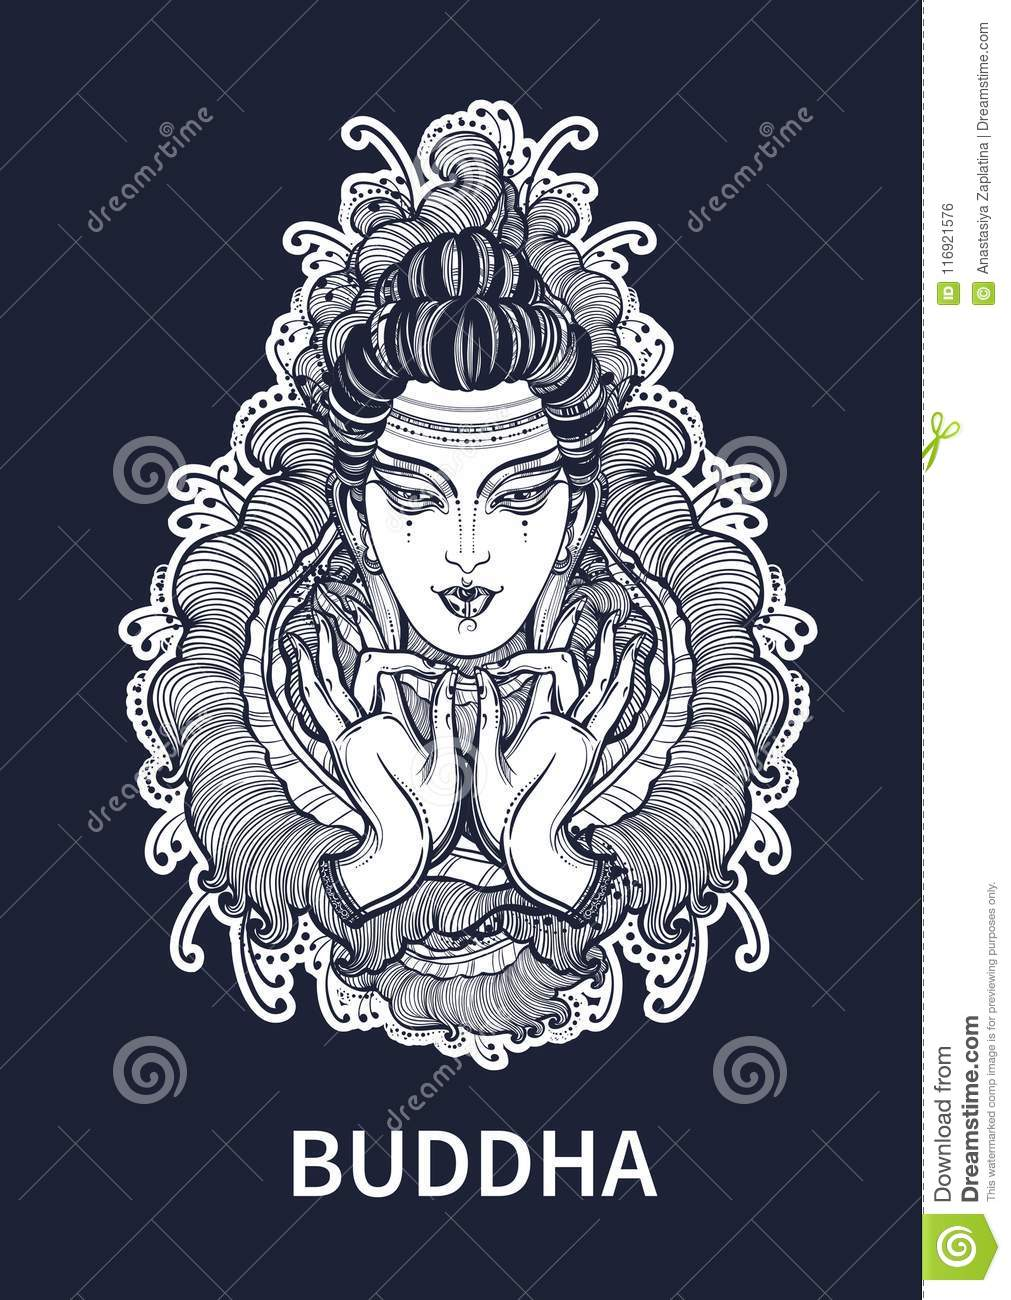 1bd409eea4f7d Beautiful Buddha face with hands over high-detailed floral decoration.  Isolated vector illustration. Sign for tattoo and print.